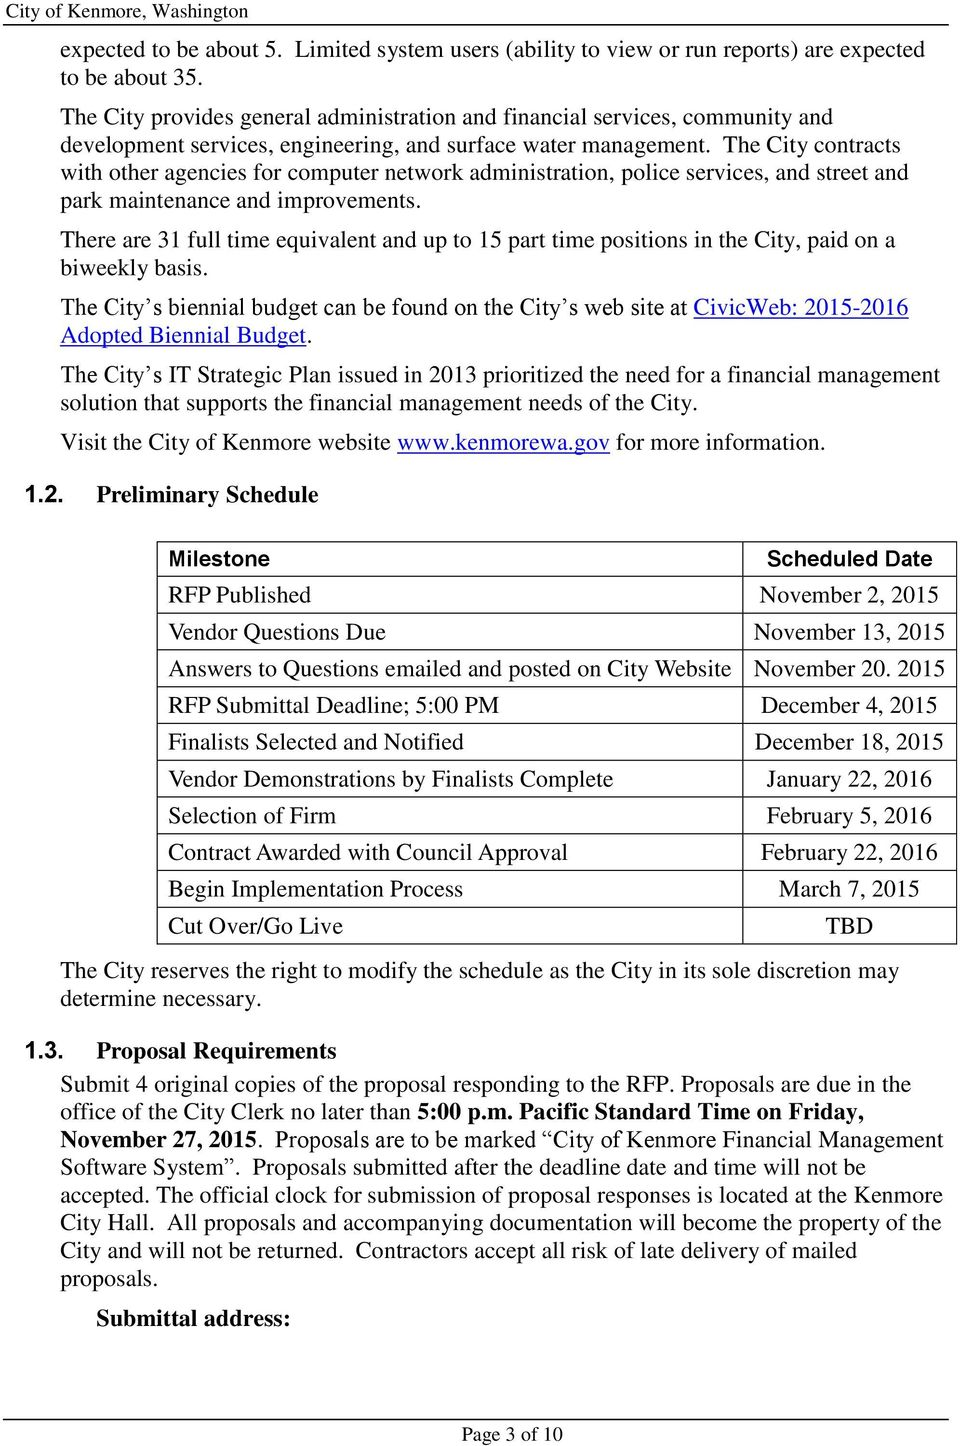 The City contracts with other agencies for computer network administration, police services, and street and park maintenance and improvements.